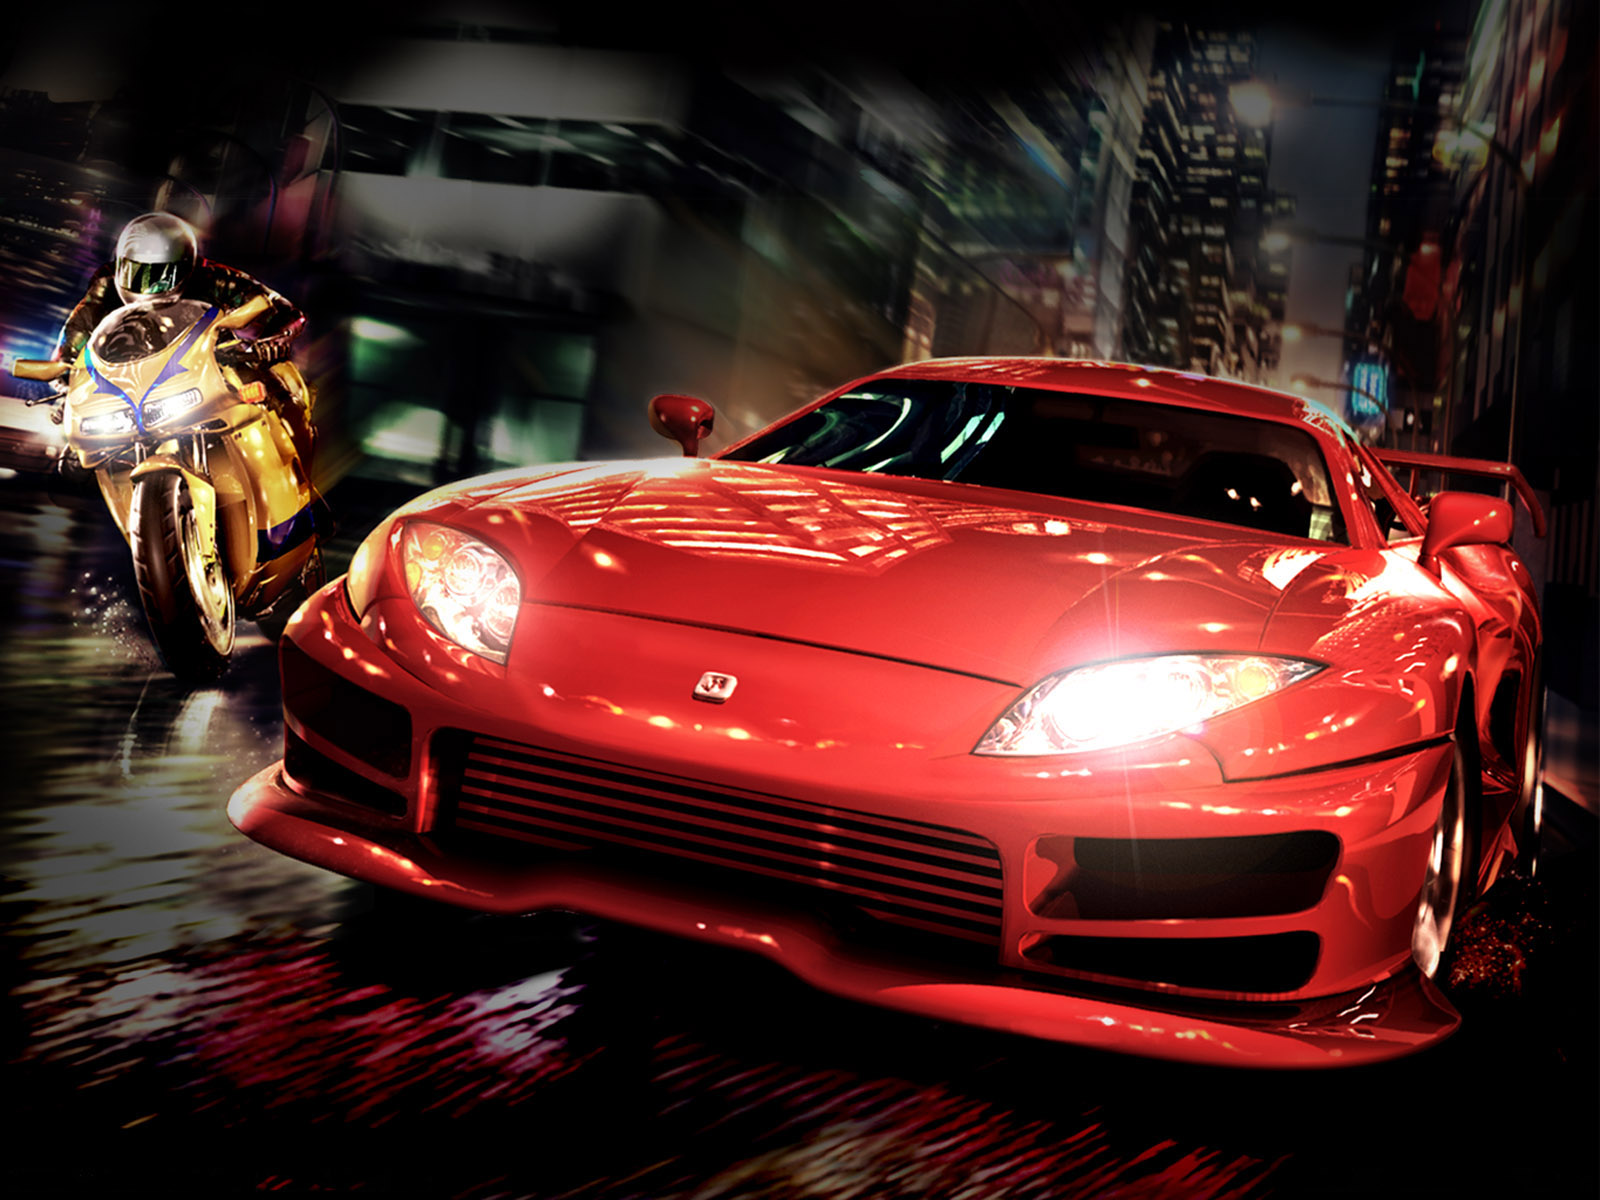 cars wallpapers desktop hd cars wallpapers desktop hd cars wallpapers 1600x1200